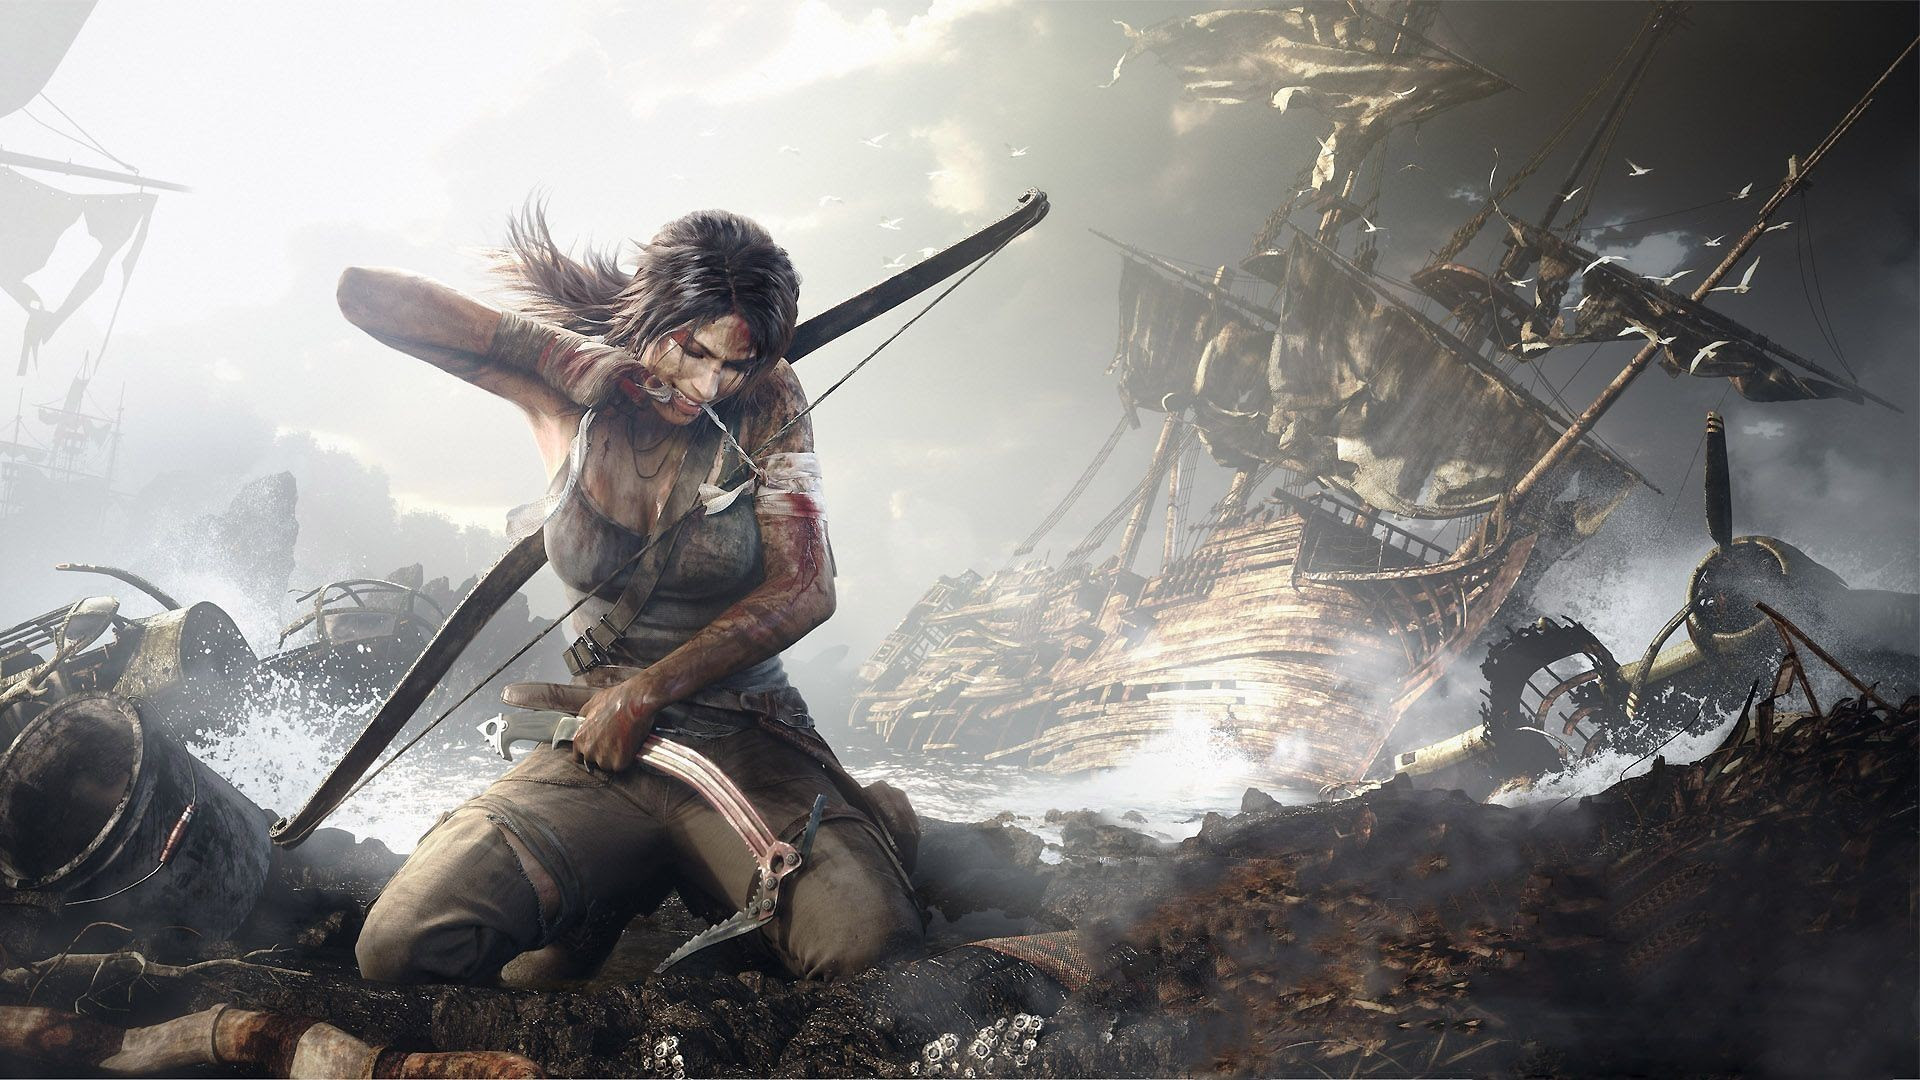 Lara Croft Wallpaper Hd 79 Images